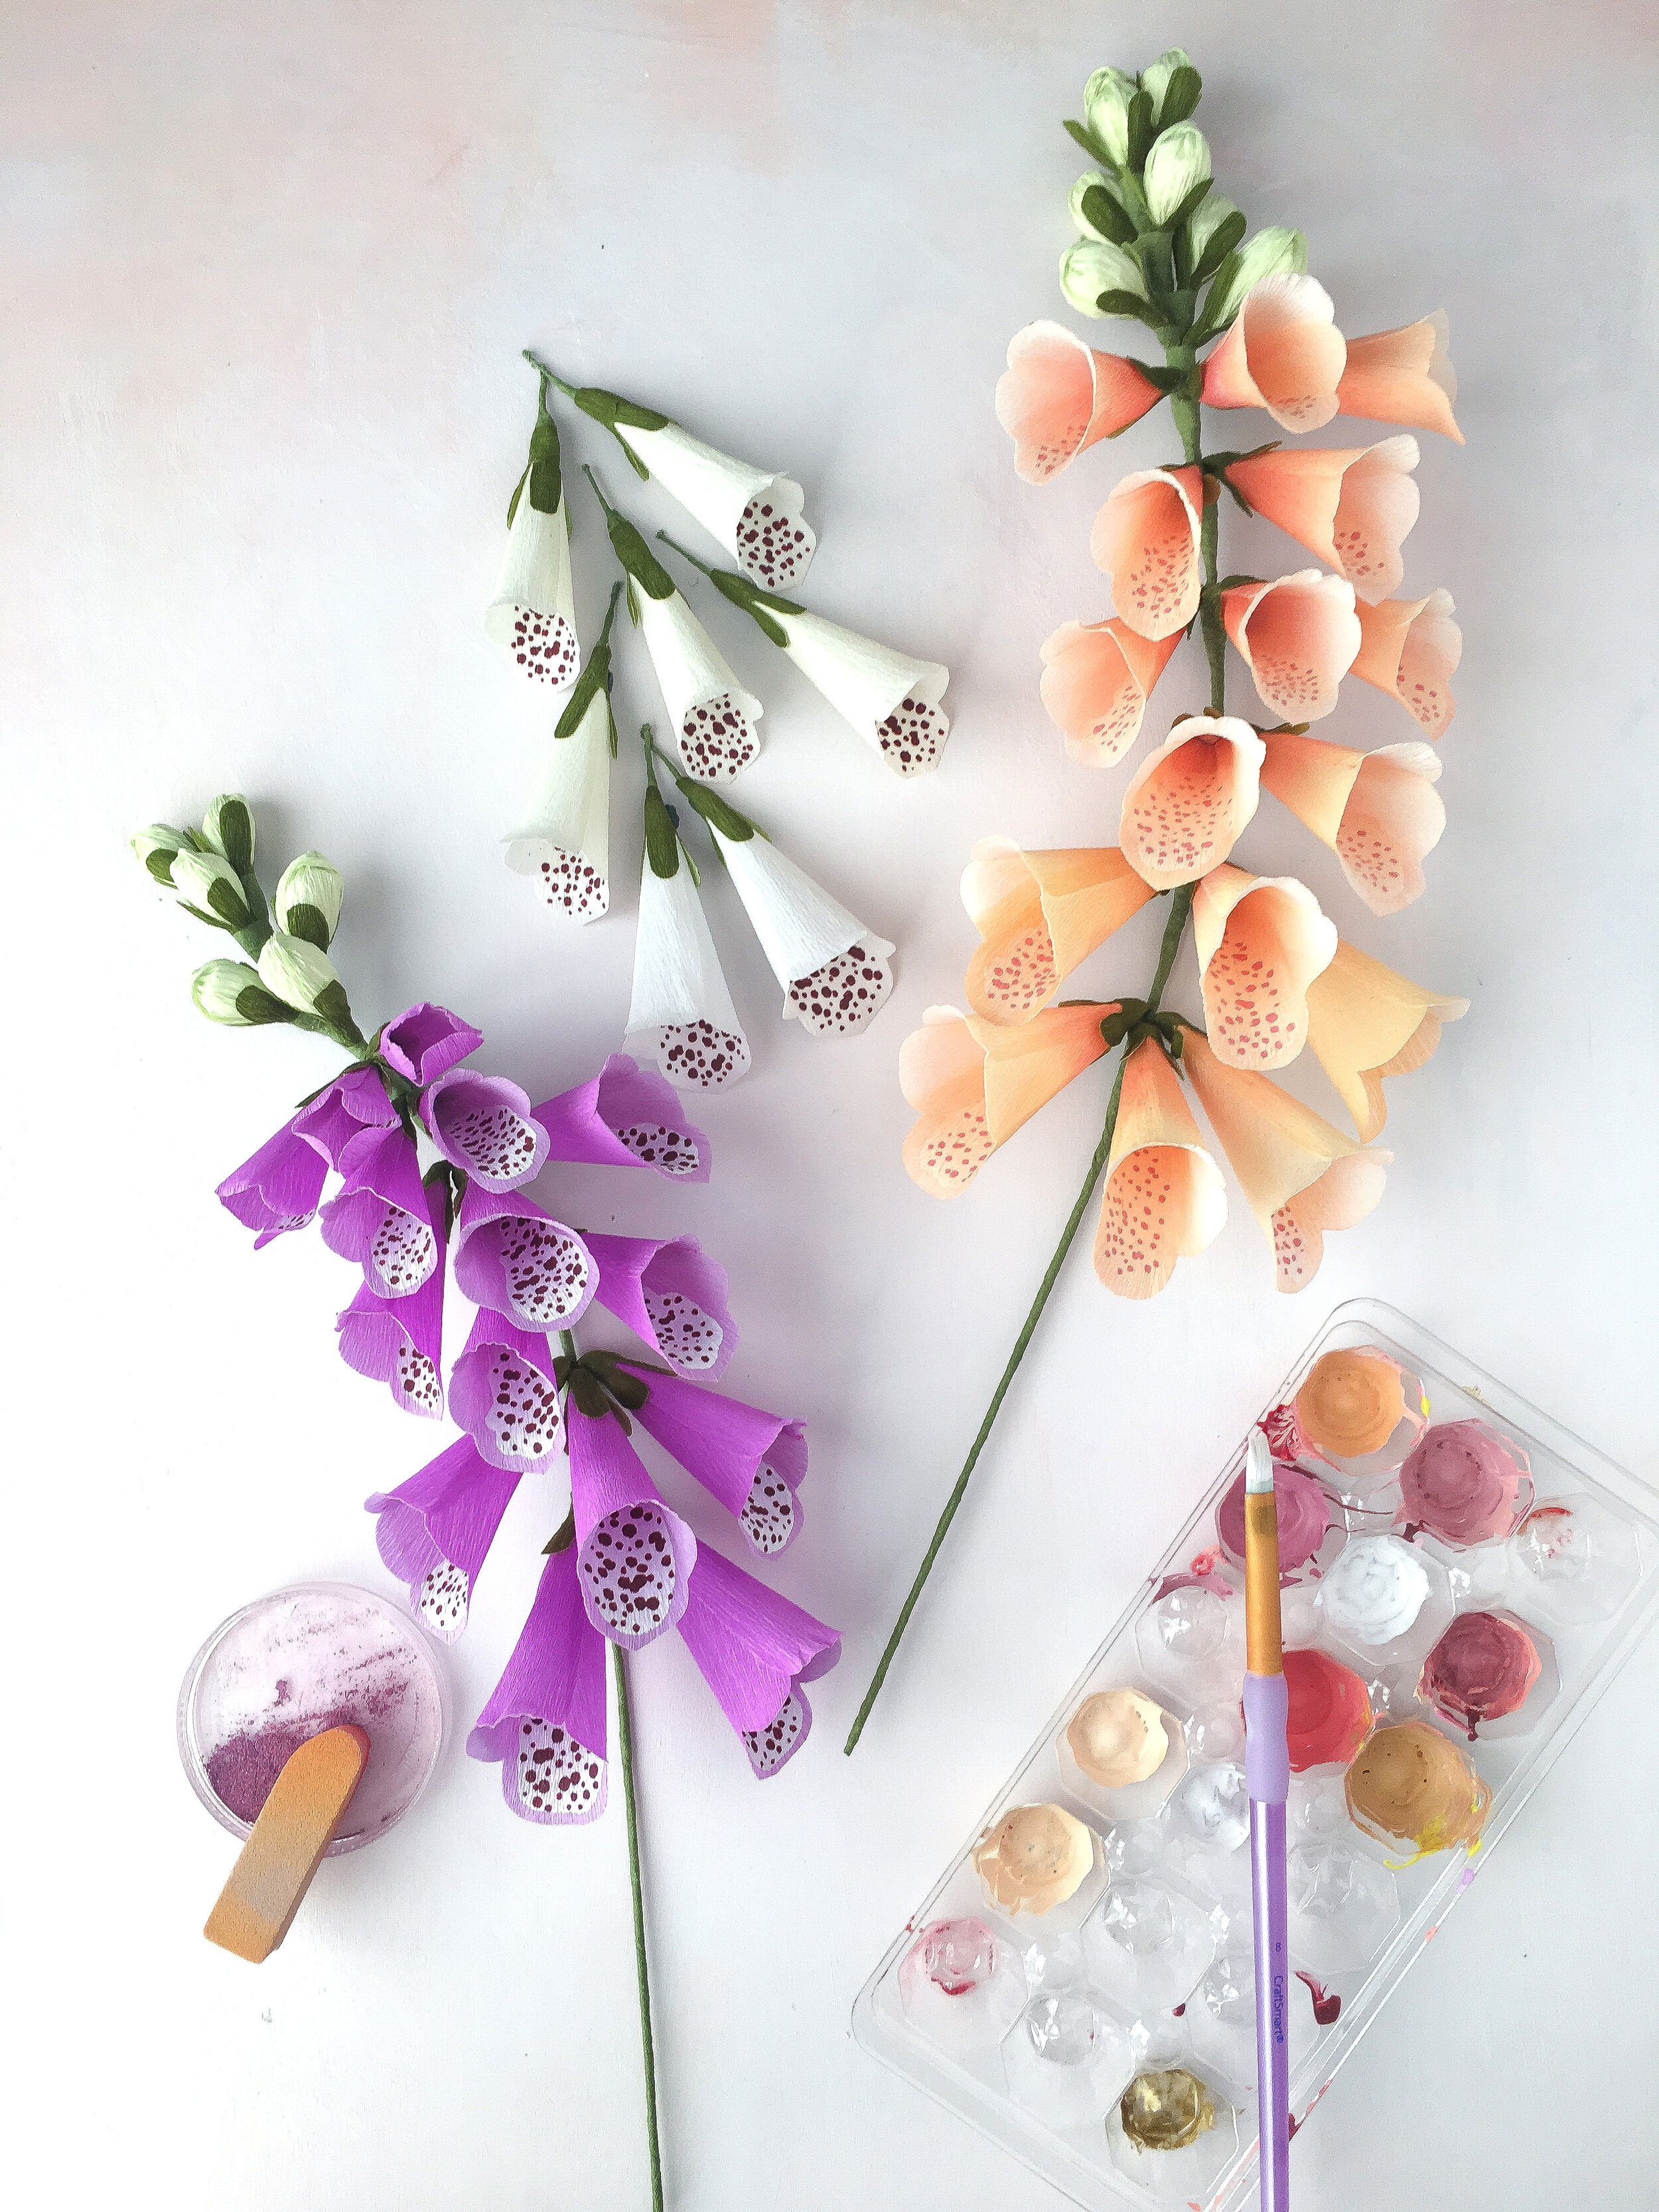 1532630169-Purple, white, apricot foxgloves with tools by Crafted to Bloom.jpg